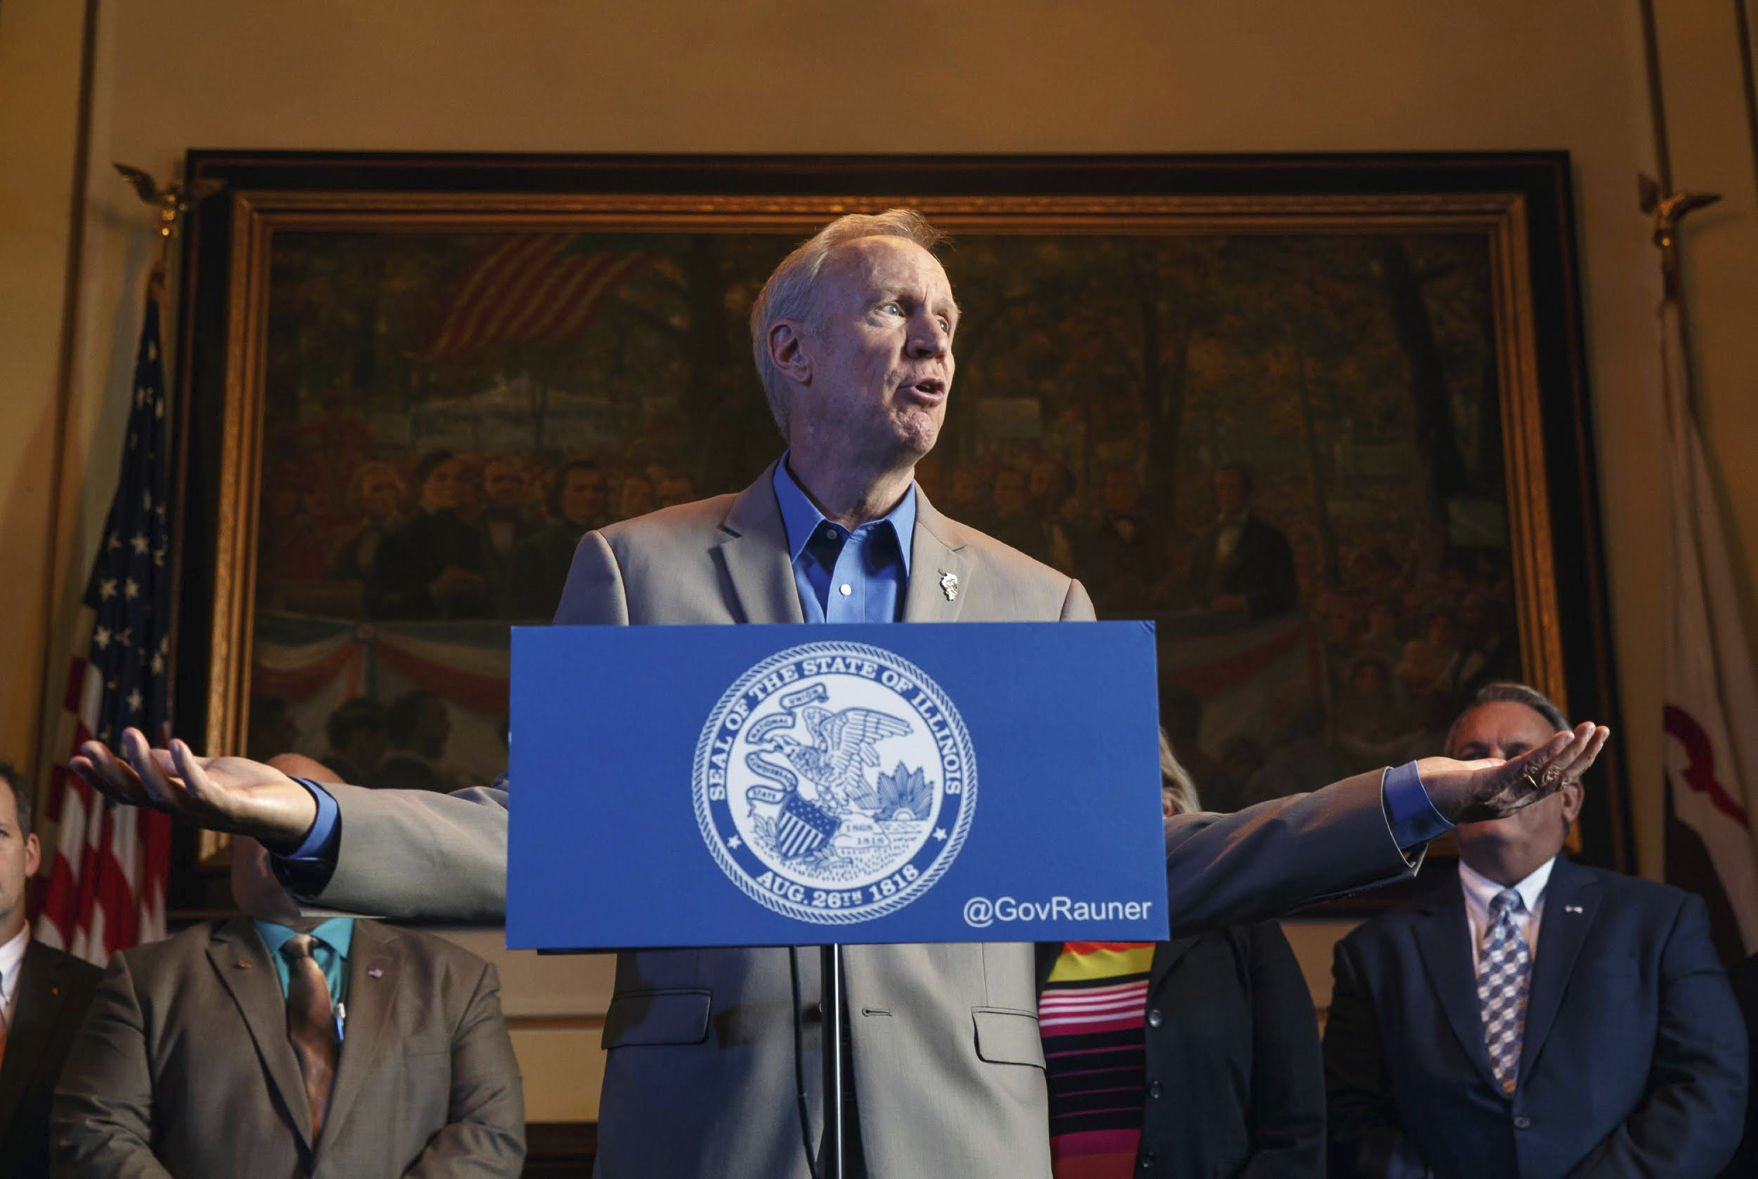 Amendatory veto from Gov. Rauner expected Monday